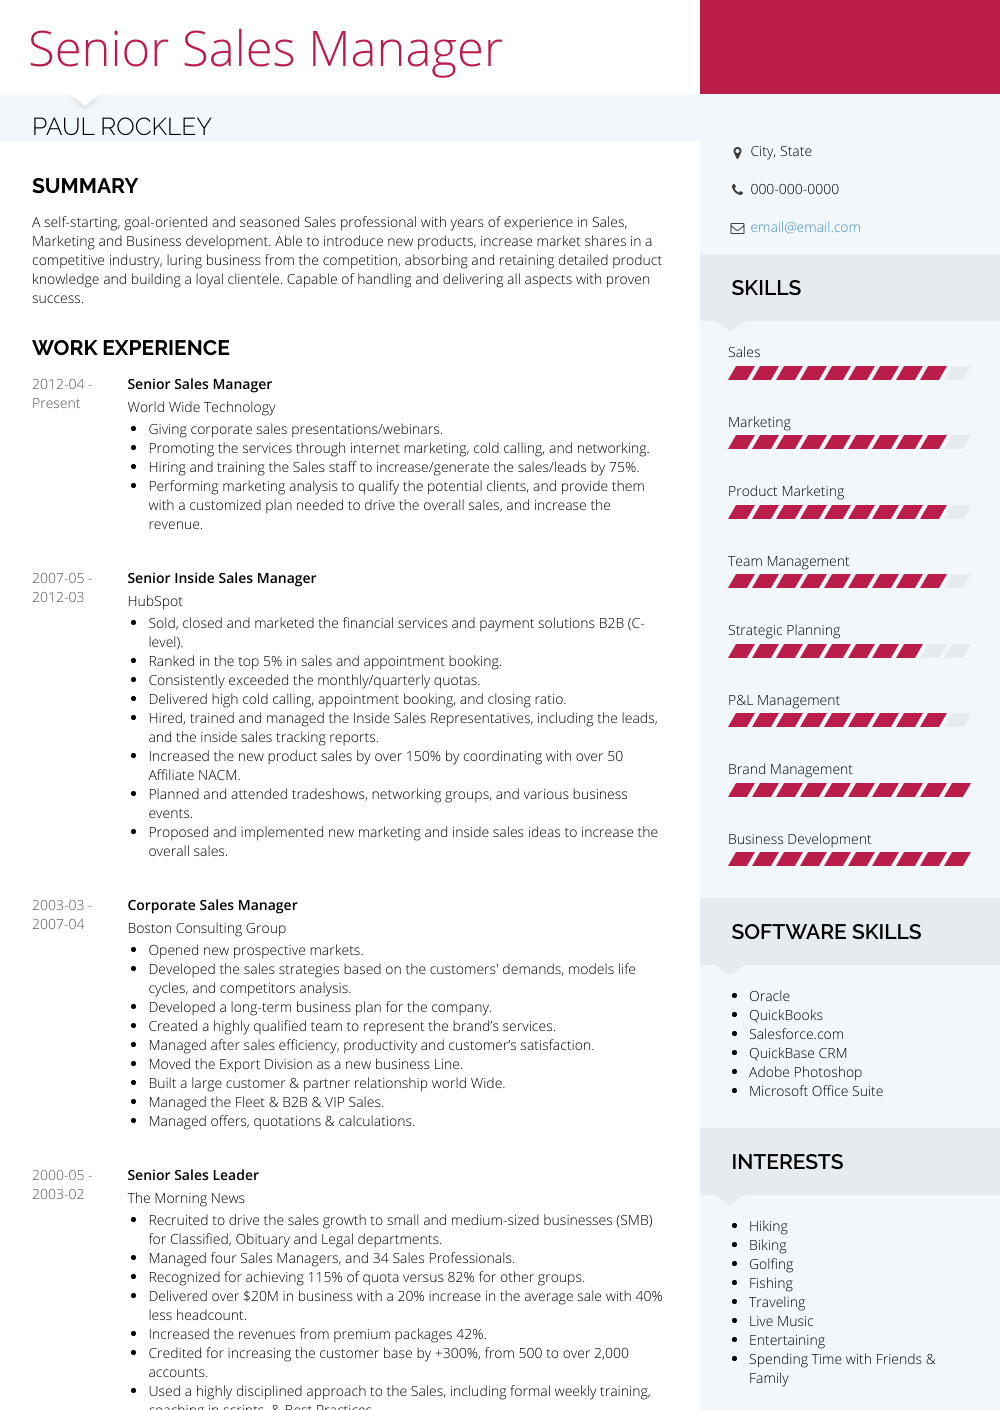 resume for sales manager template